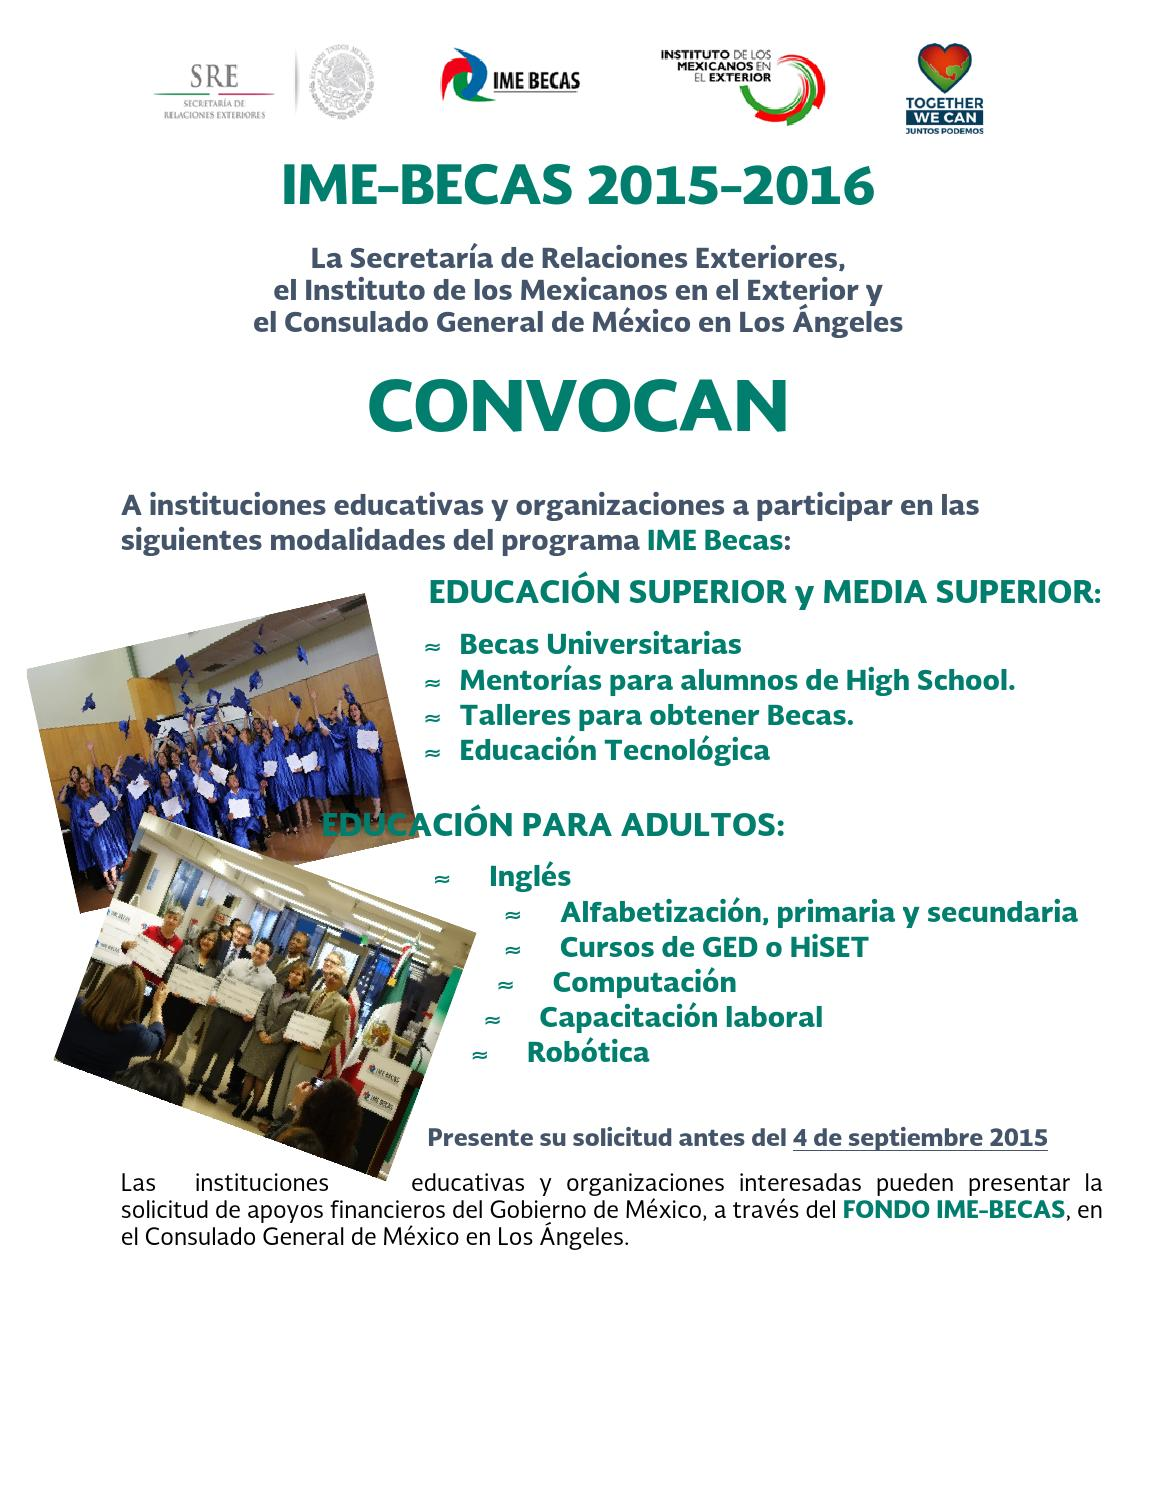 Ime becas 2015 2016 by consulmex los angeles issuu for Secretaria de relaciones exteriores becas